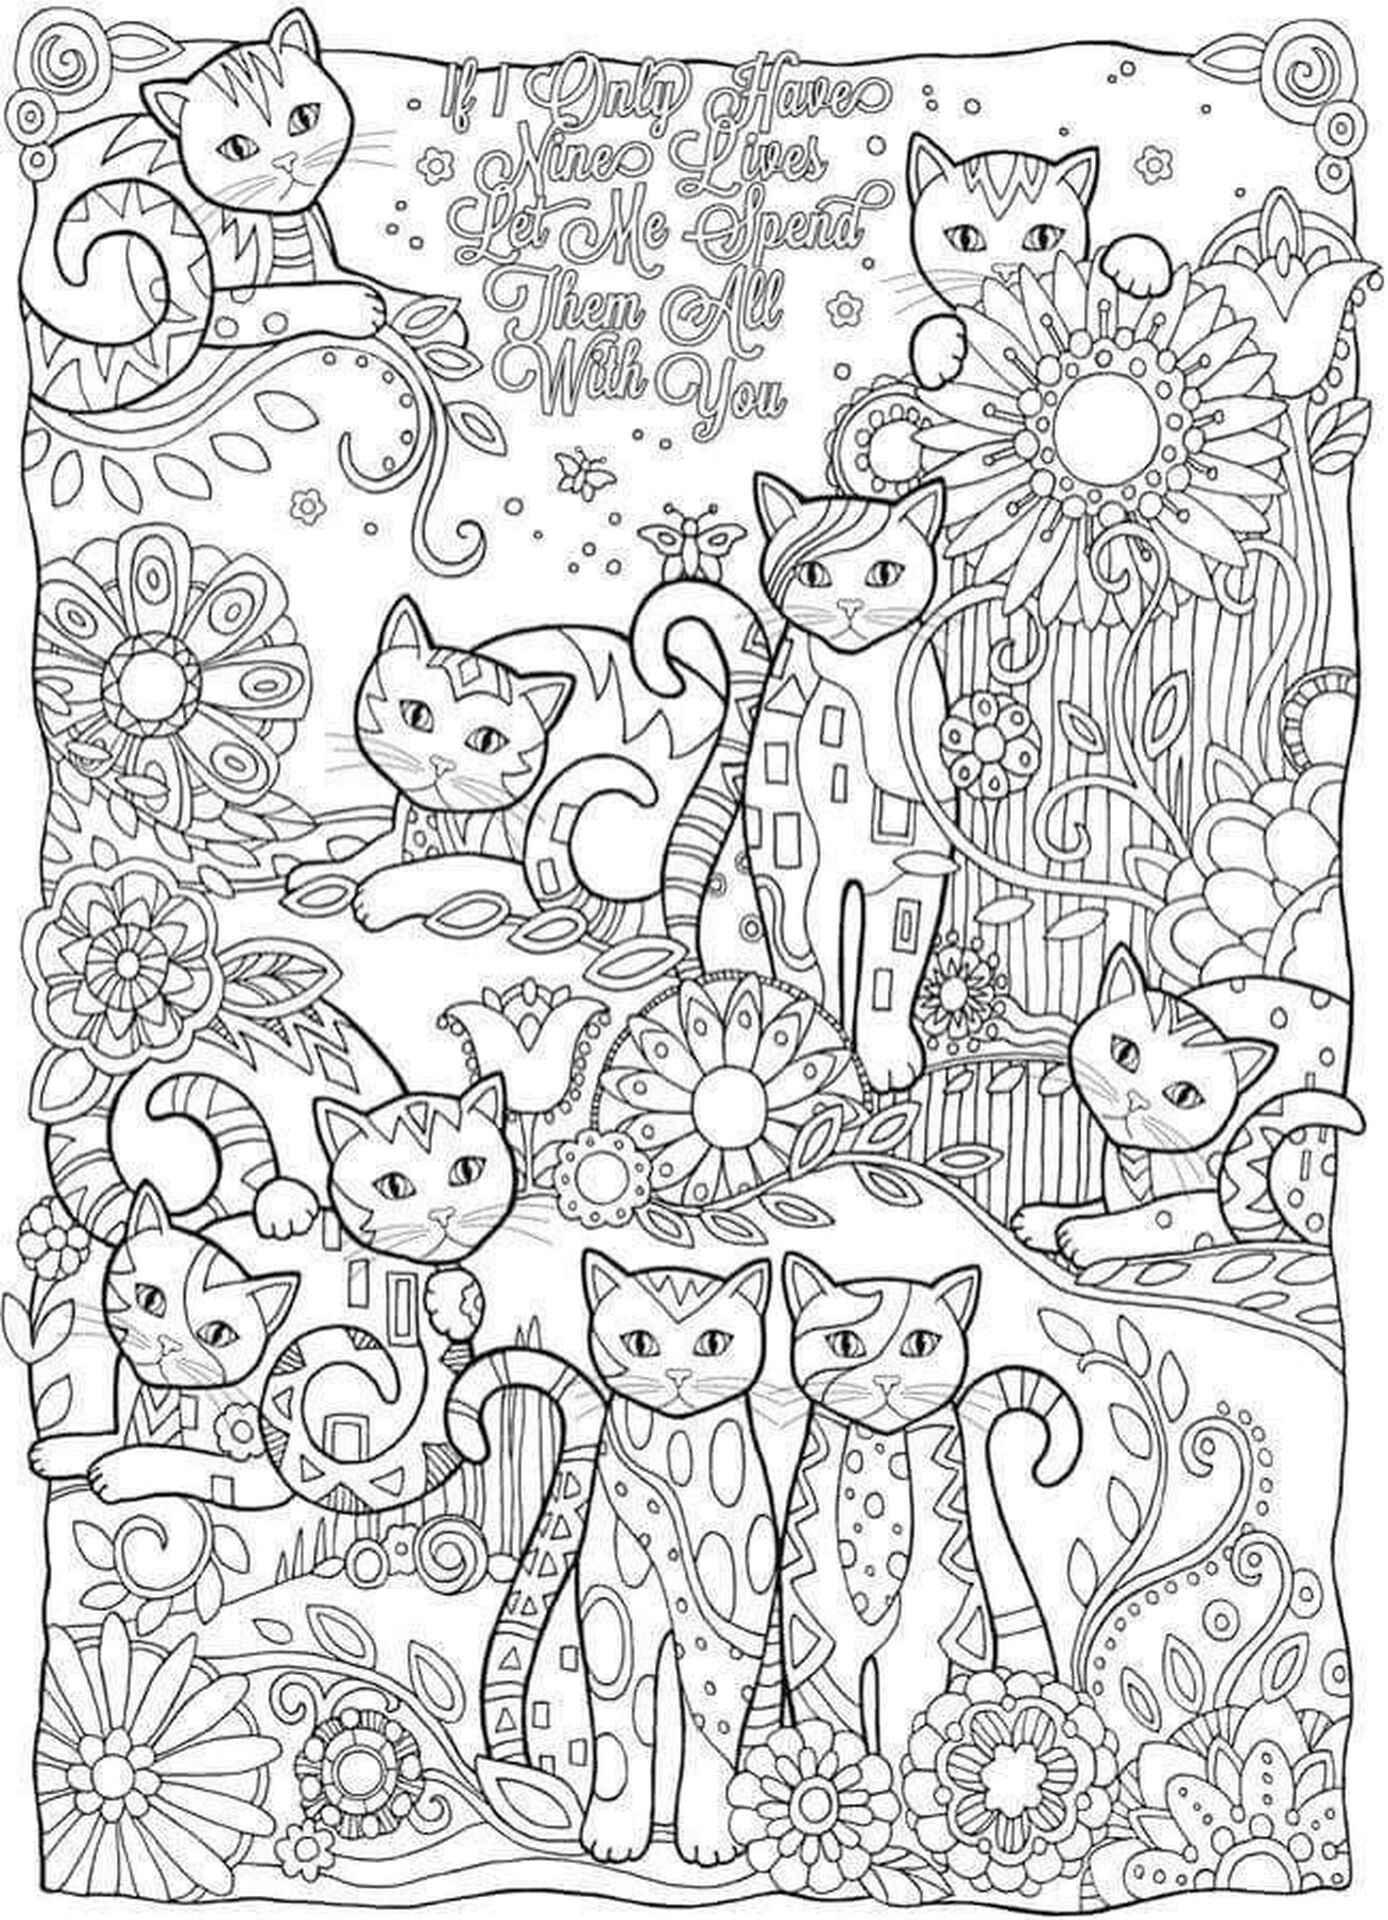 Plenty Of Cats Coloring Sheet For Adults